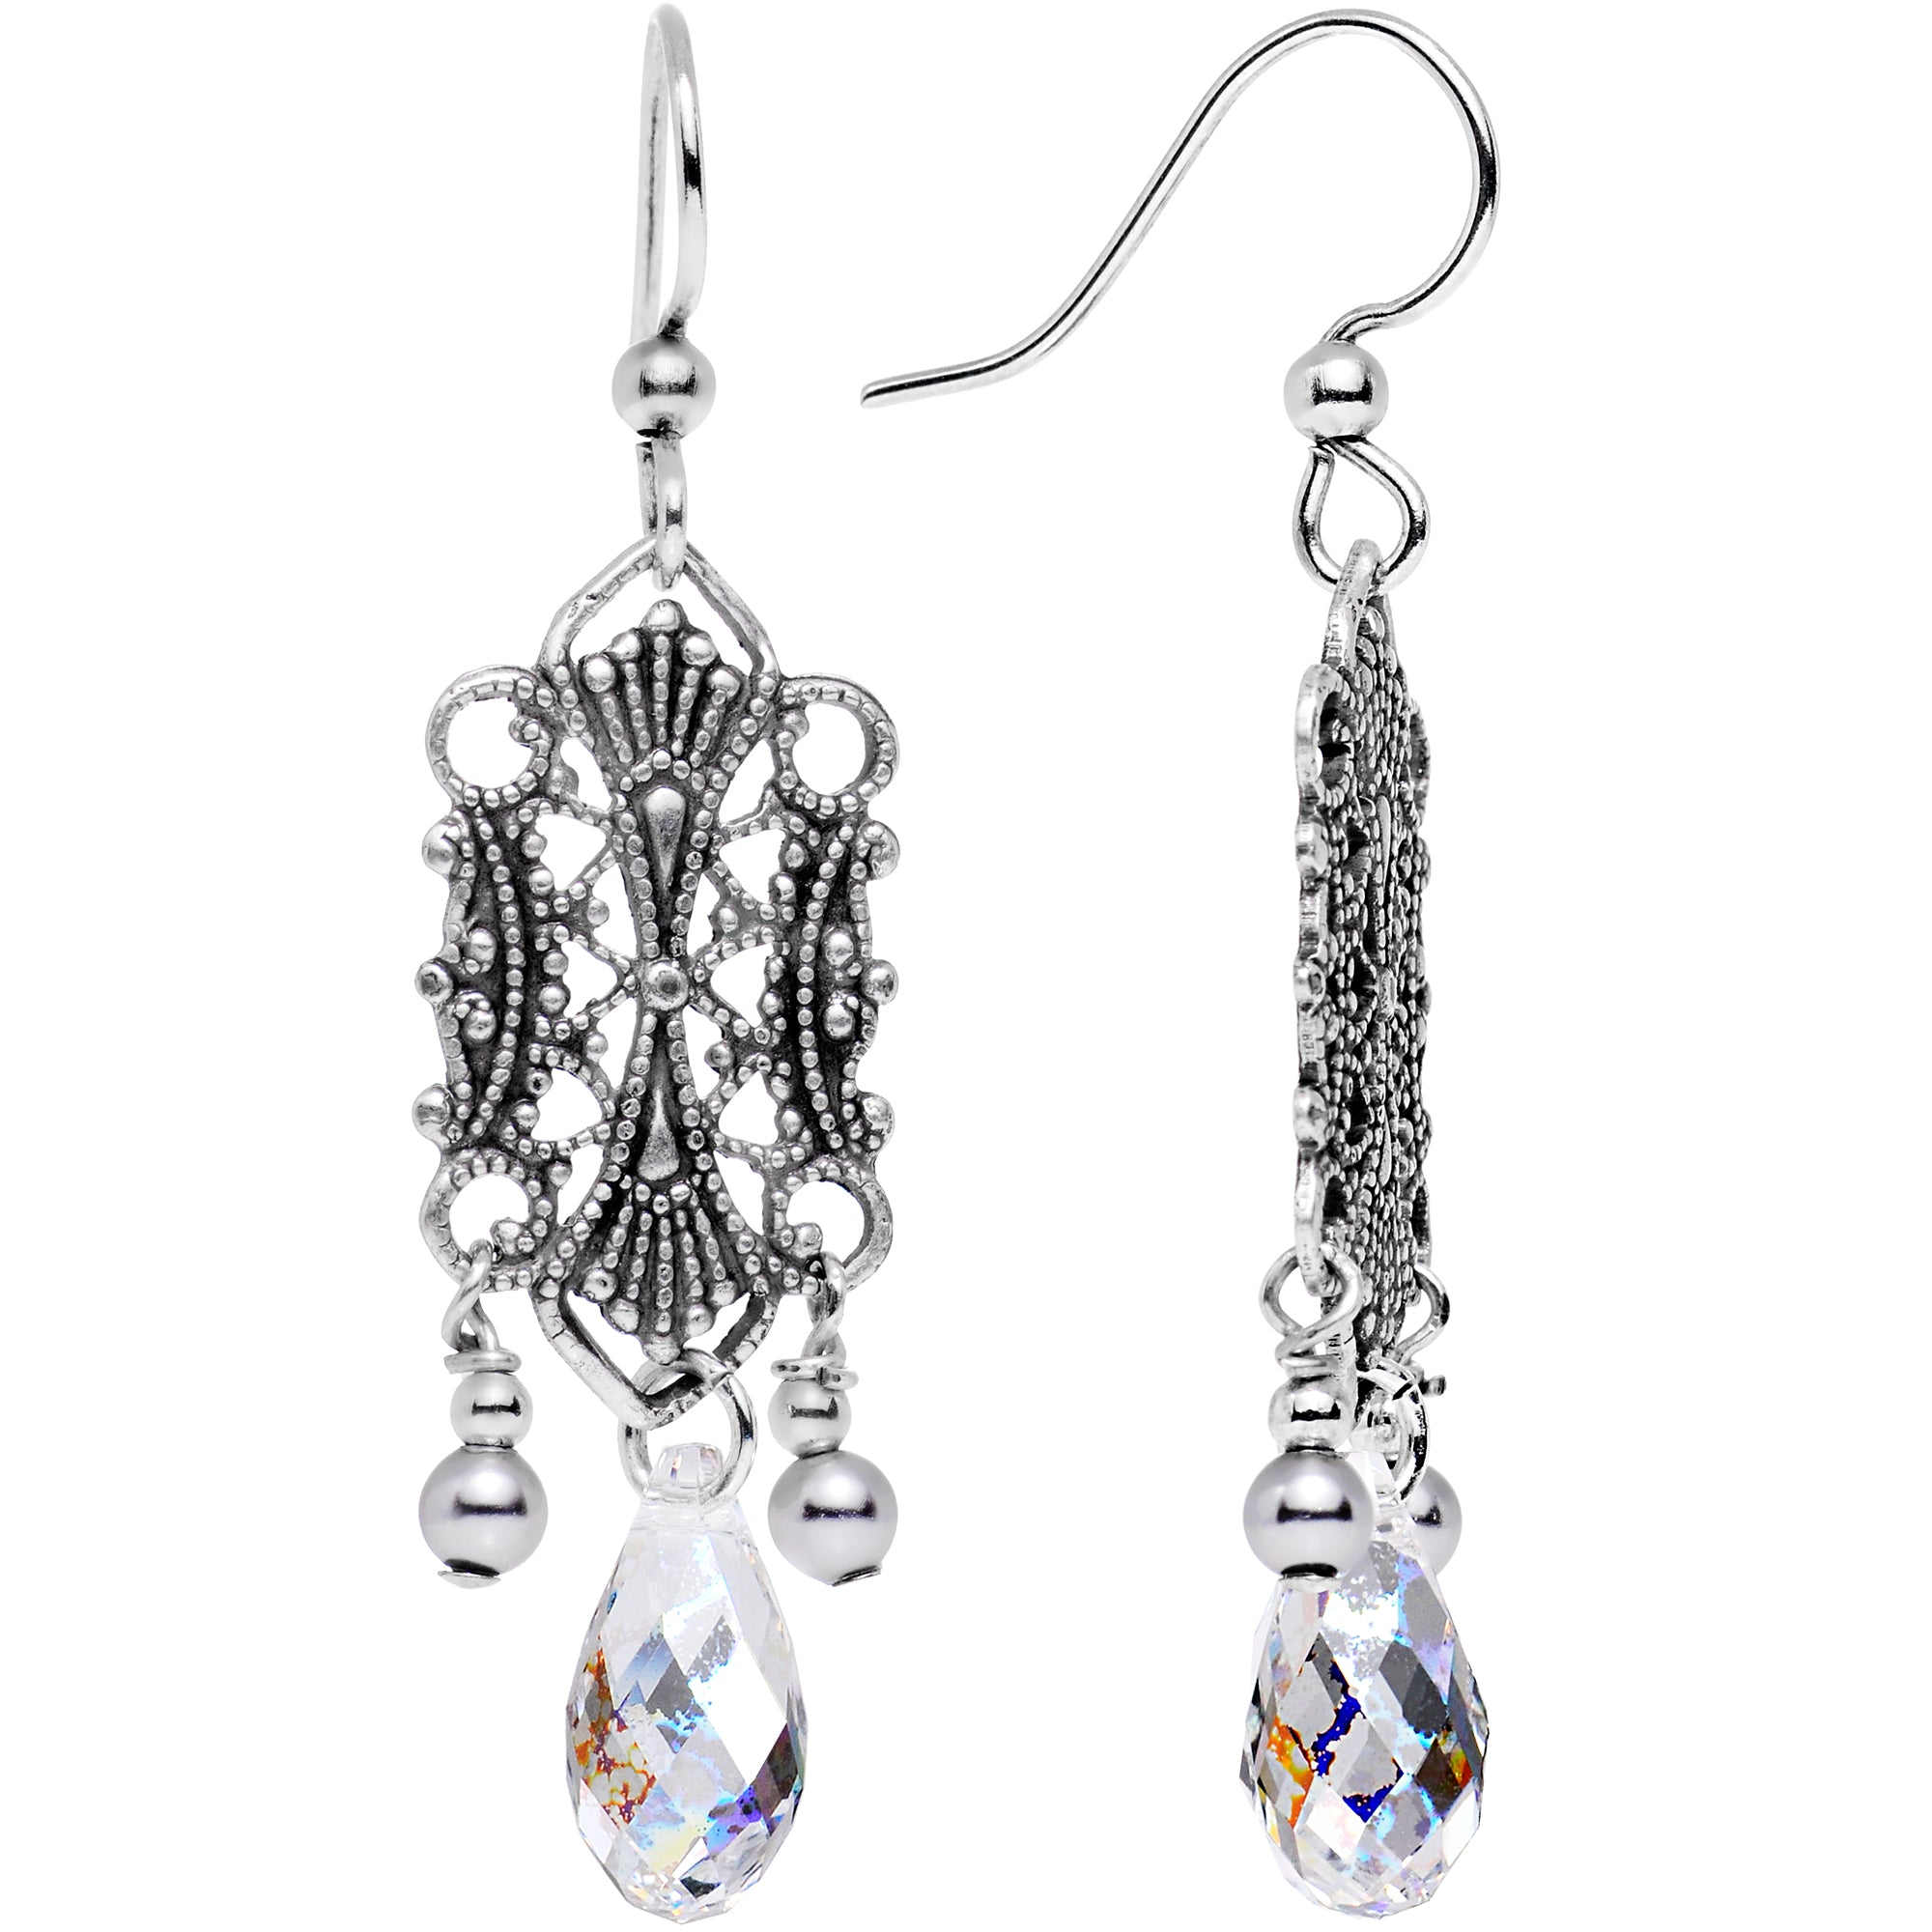 Handcrafted Clear Lattice Earrings Created with Swarovski Crystals